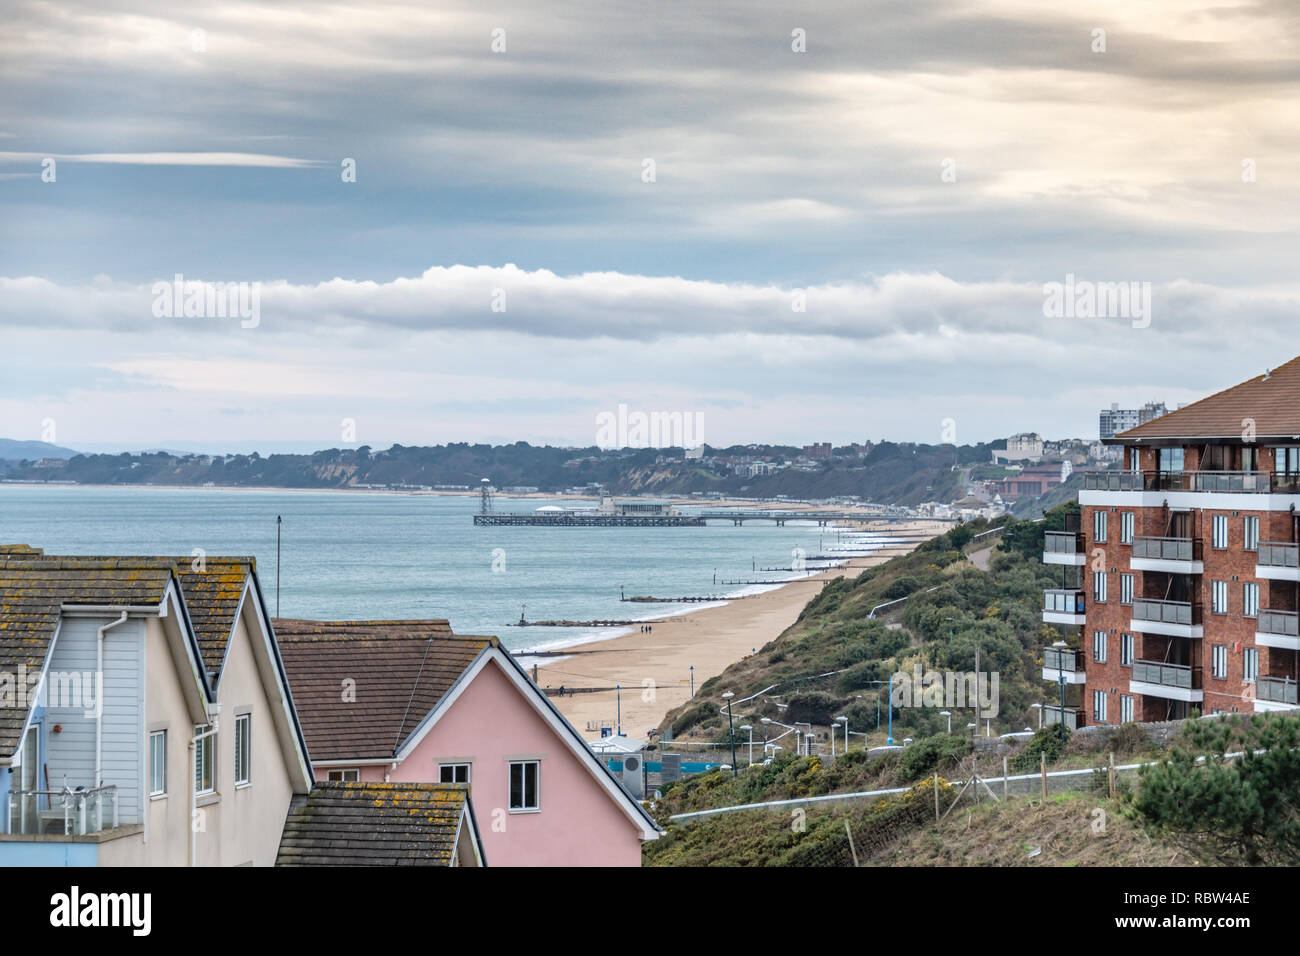 Bournemouth, Dorset, UK. 12th January 2019. Winter sun over beach in Bournemouth on a winters day. Credit: Thomas Faull/Alamy Live News Stock Photo